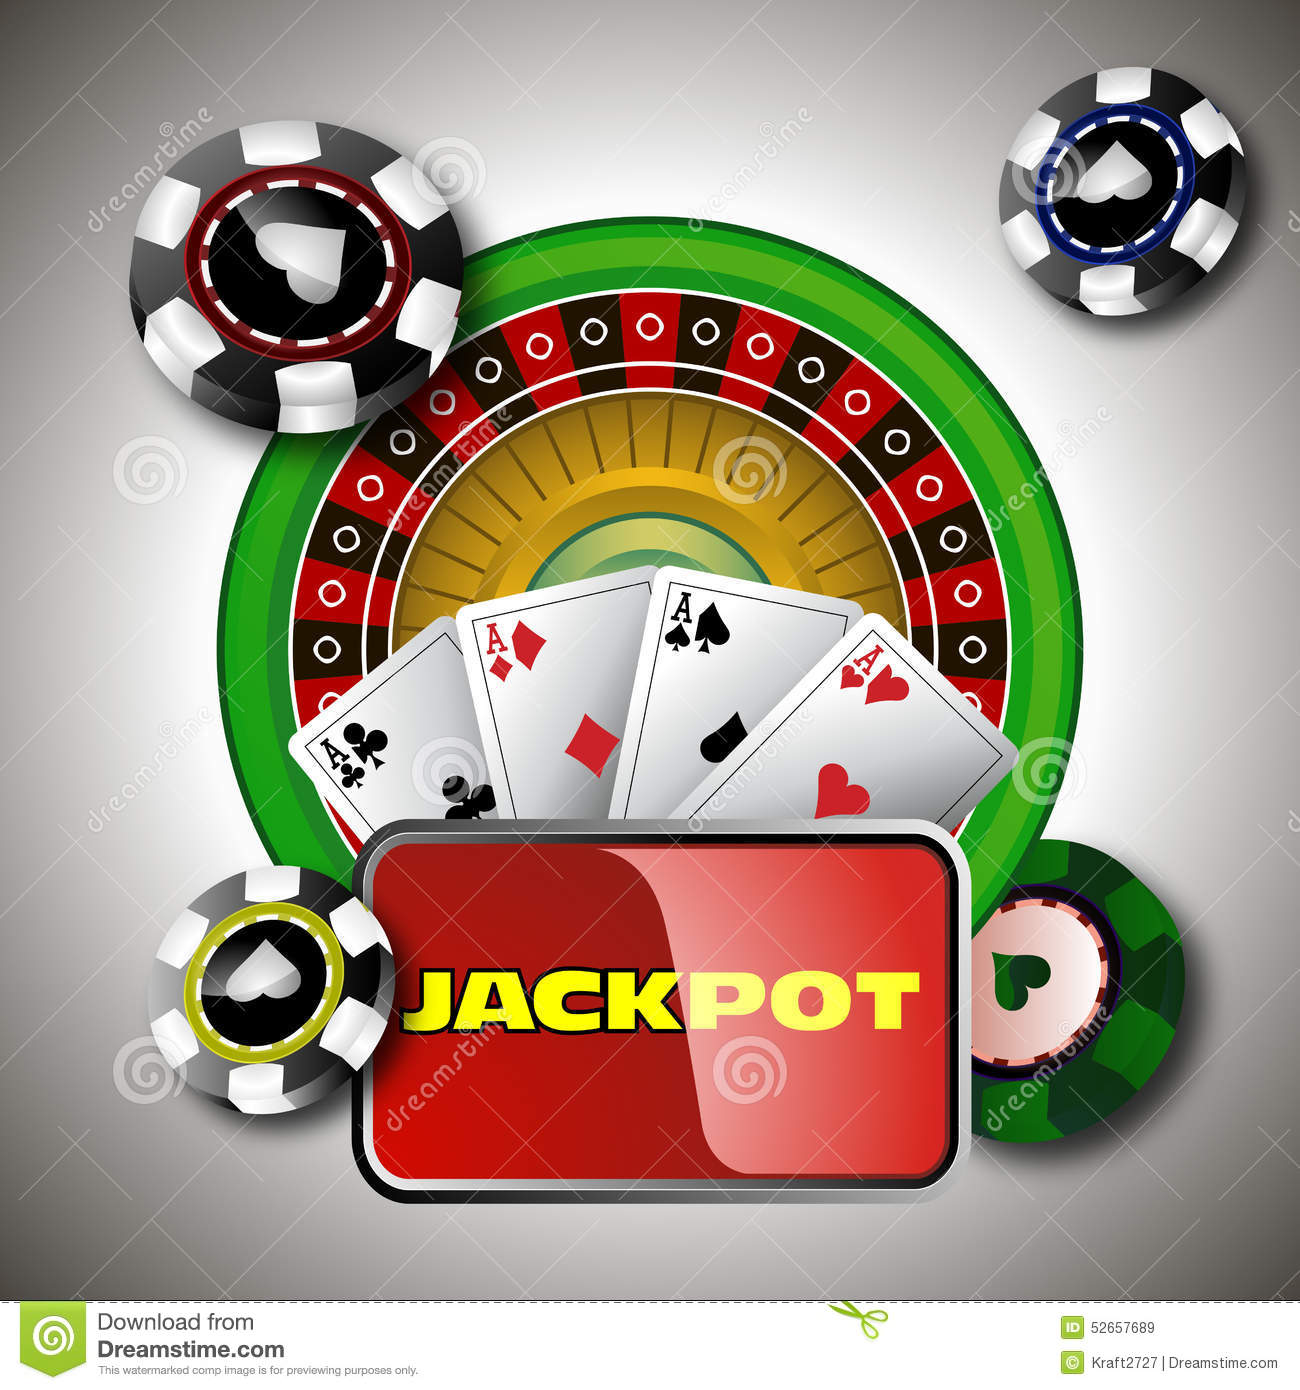 How to Find a Big Win in On the web Slots